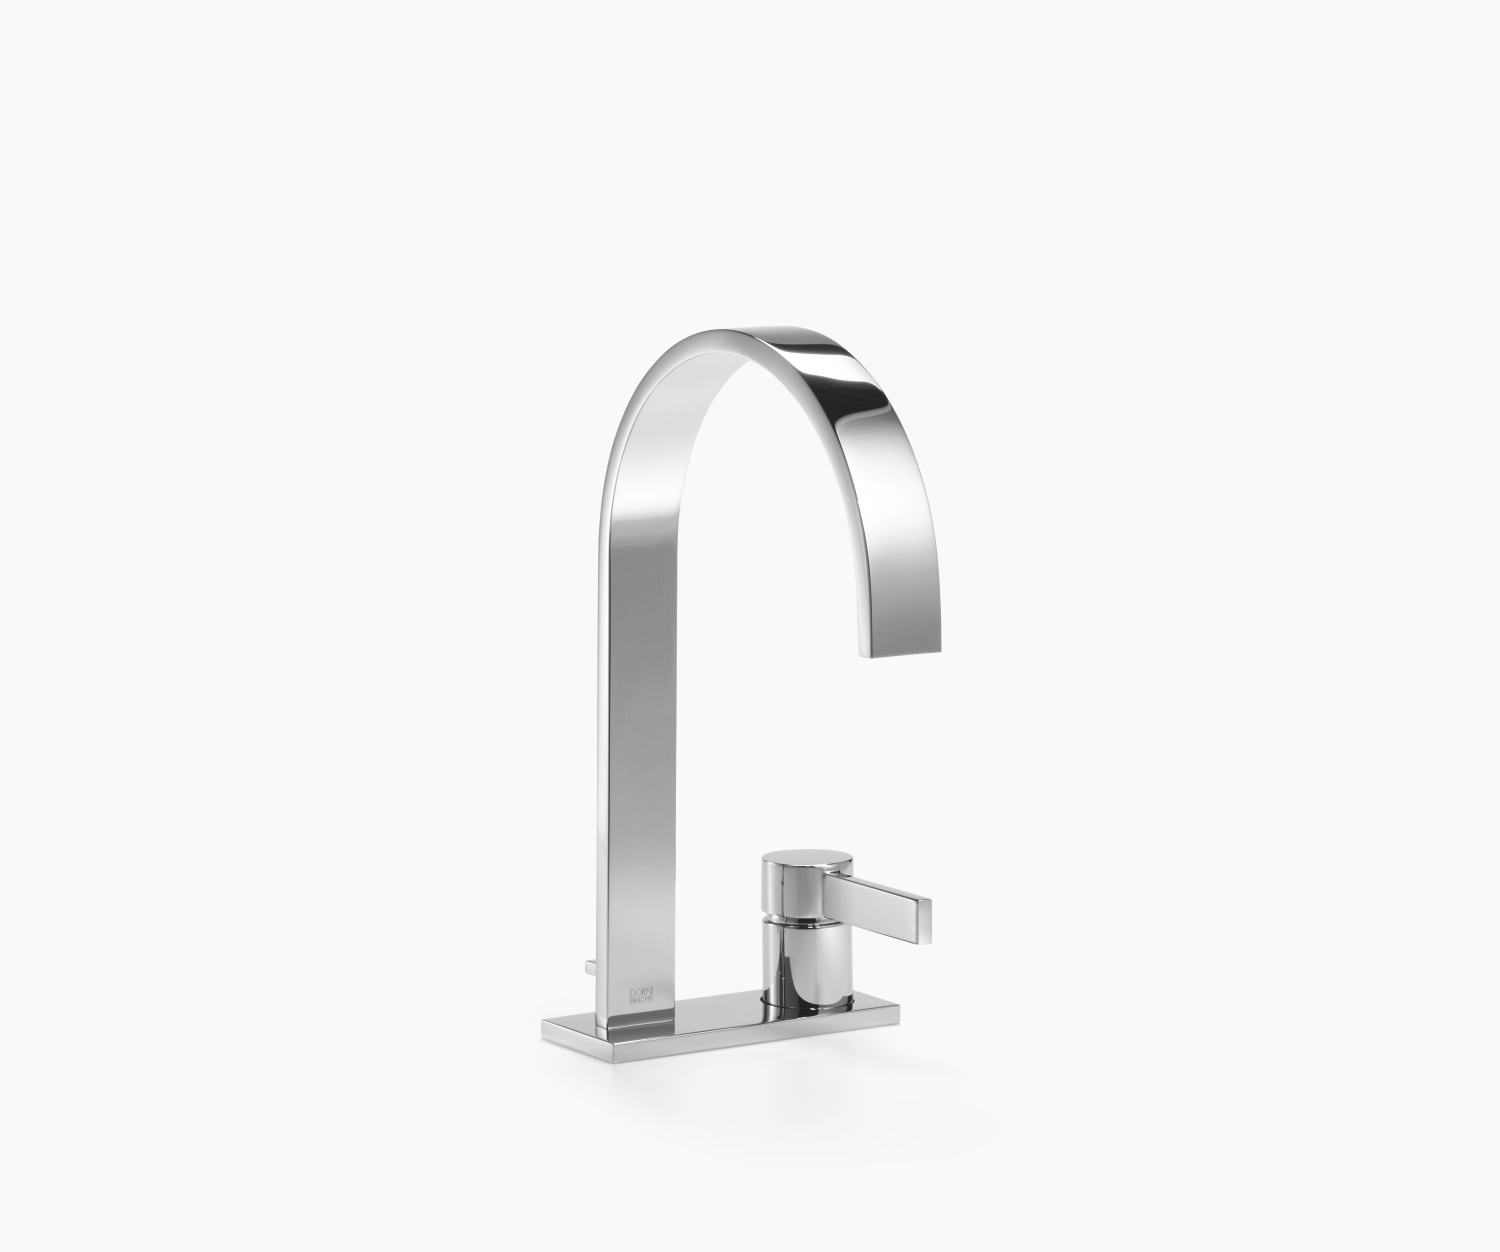 two-hole basin mixer with cover plate with pop-up waste - platinum matt - 33 543 782-06